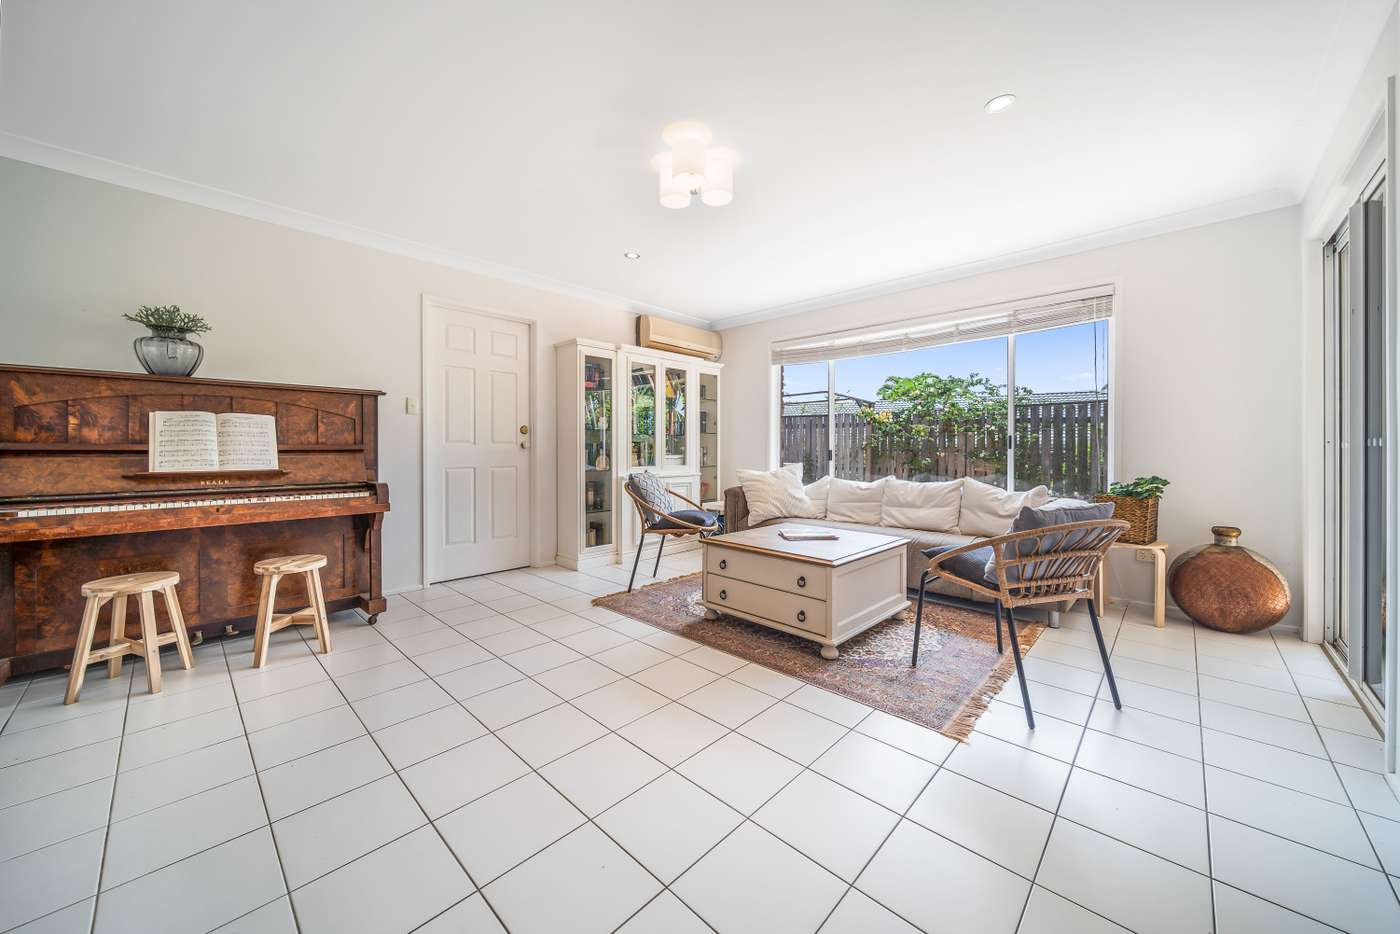 Seventh view of Homely house listing, 2 Solana Ct (Private Court Off 350 Springwood Rd), Springwood QLD 4127